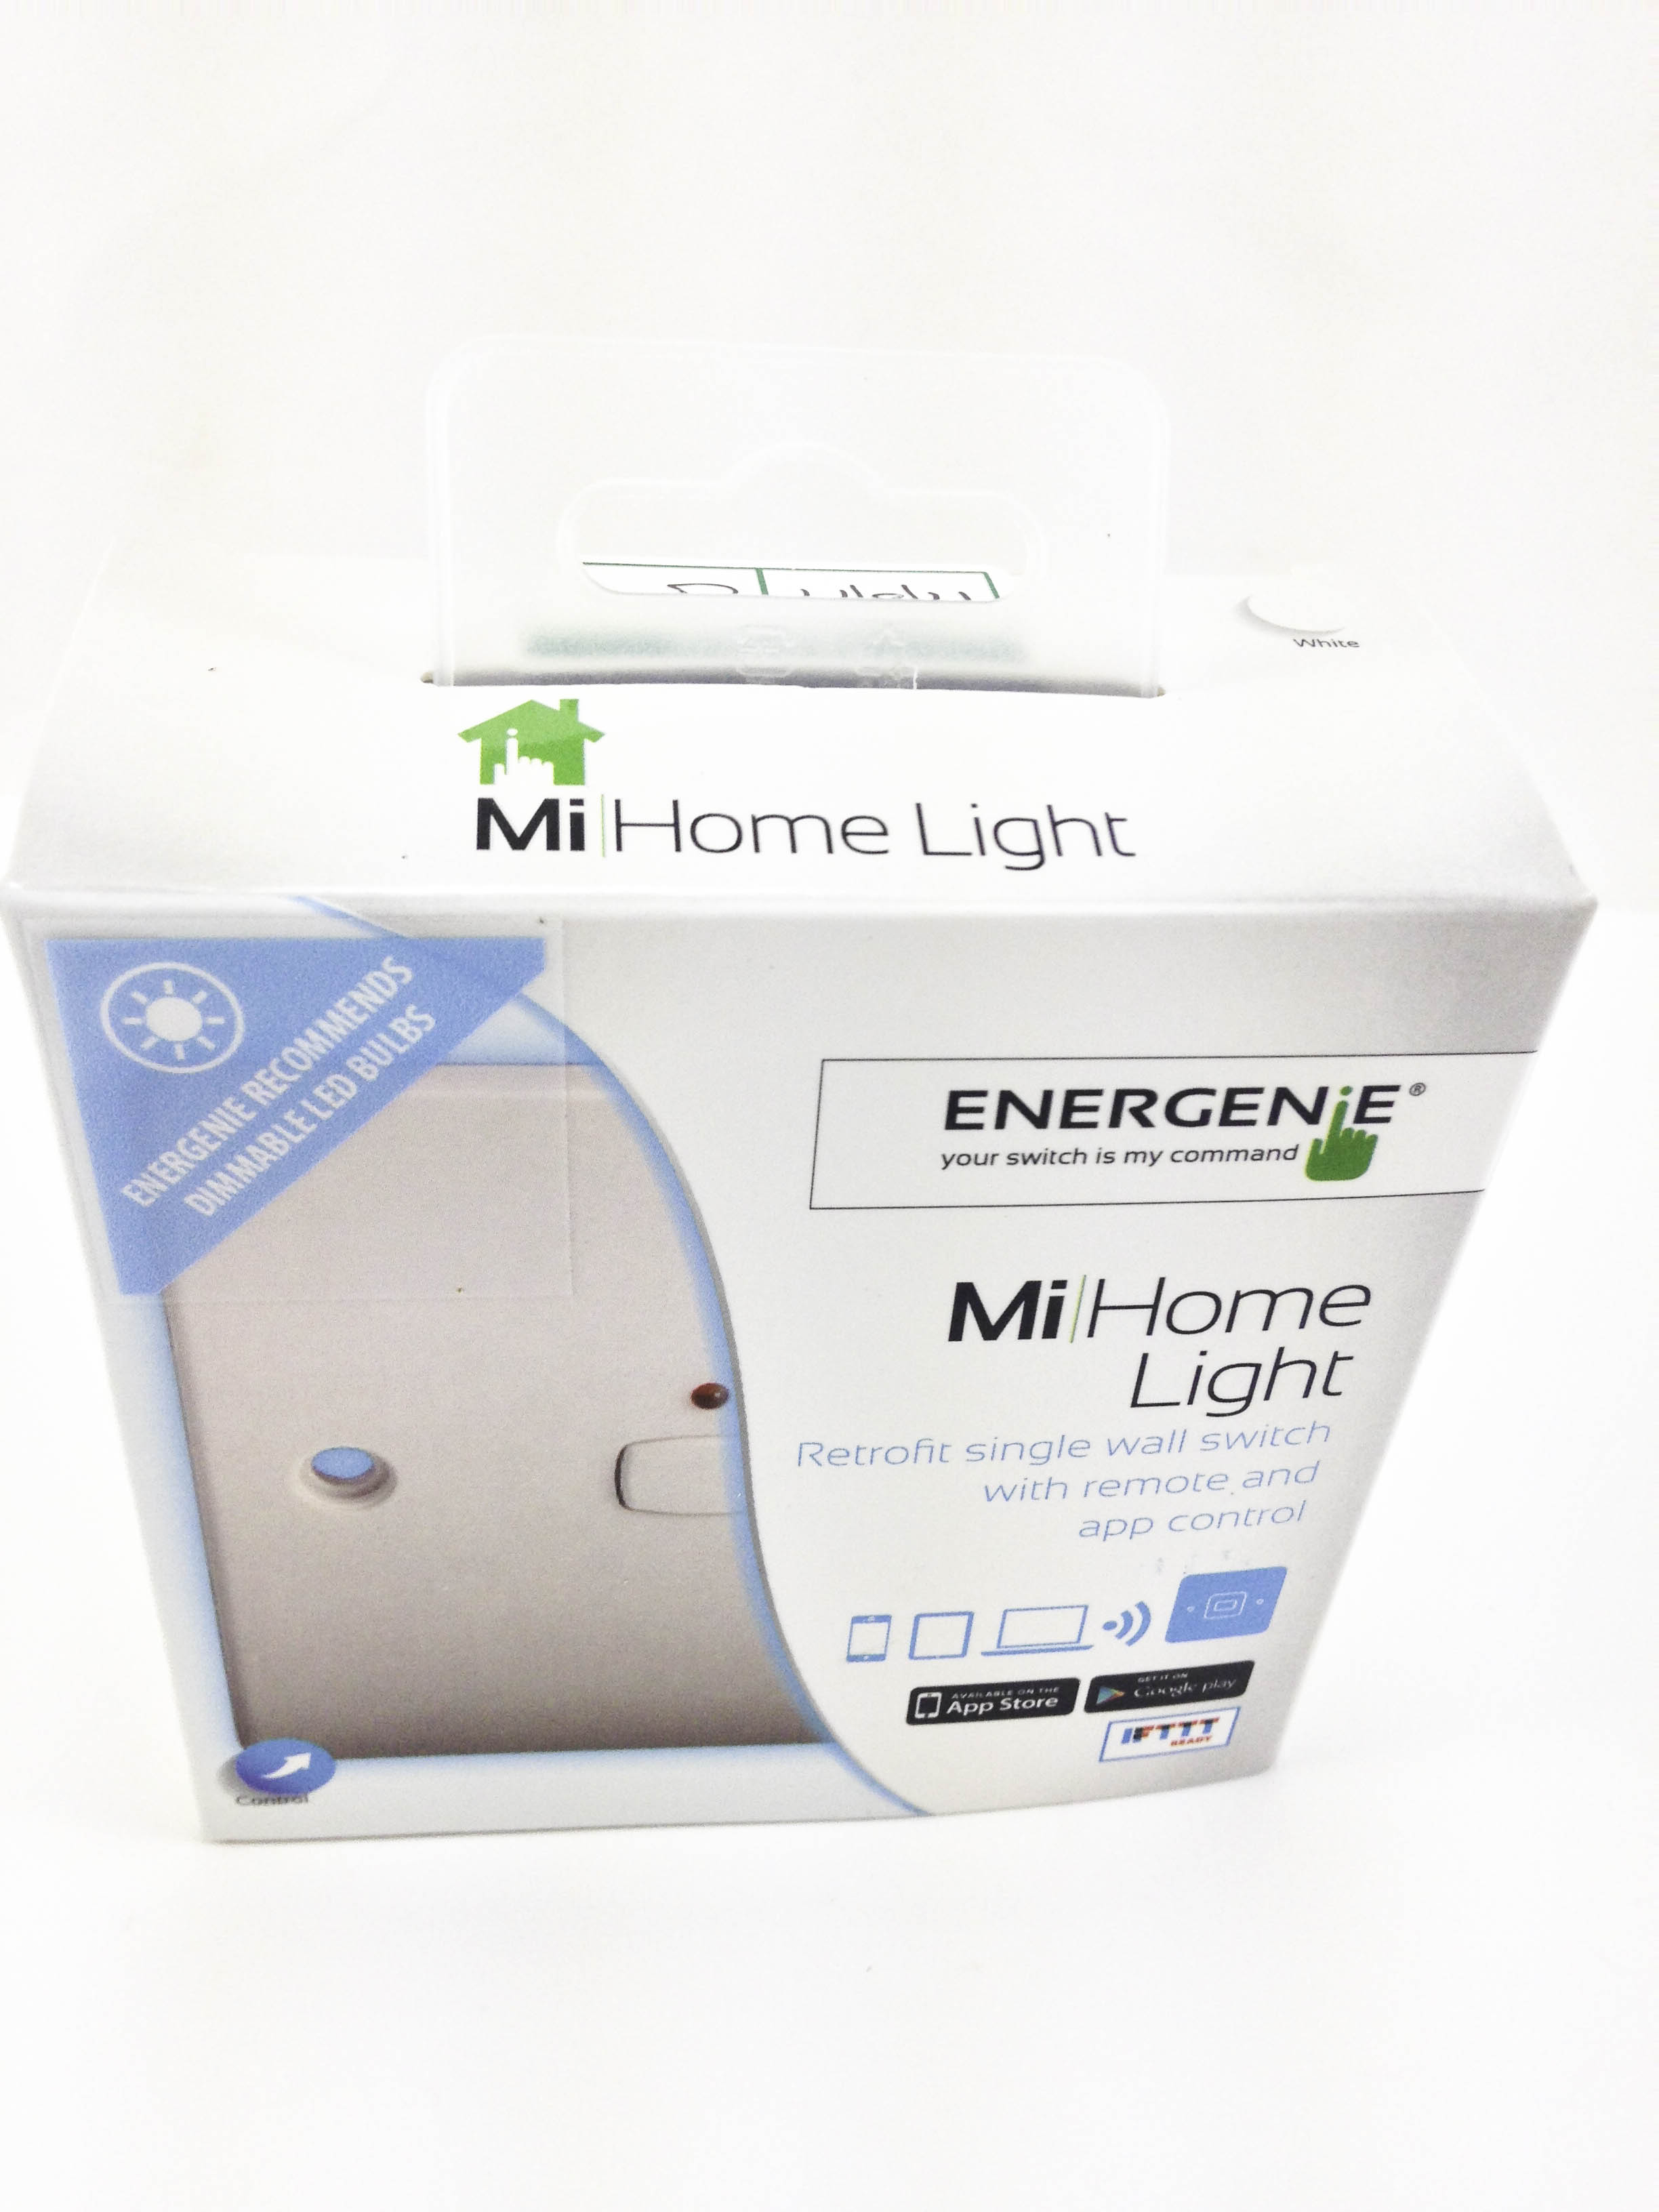 Energenie MiHome Light Switch   My Helpful Hints   Honest Reviews